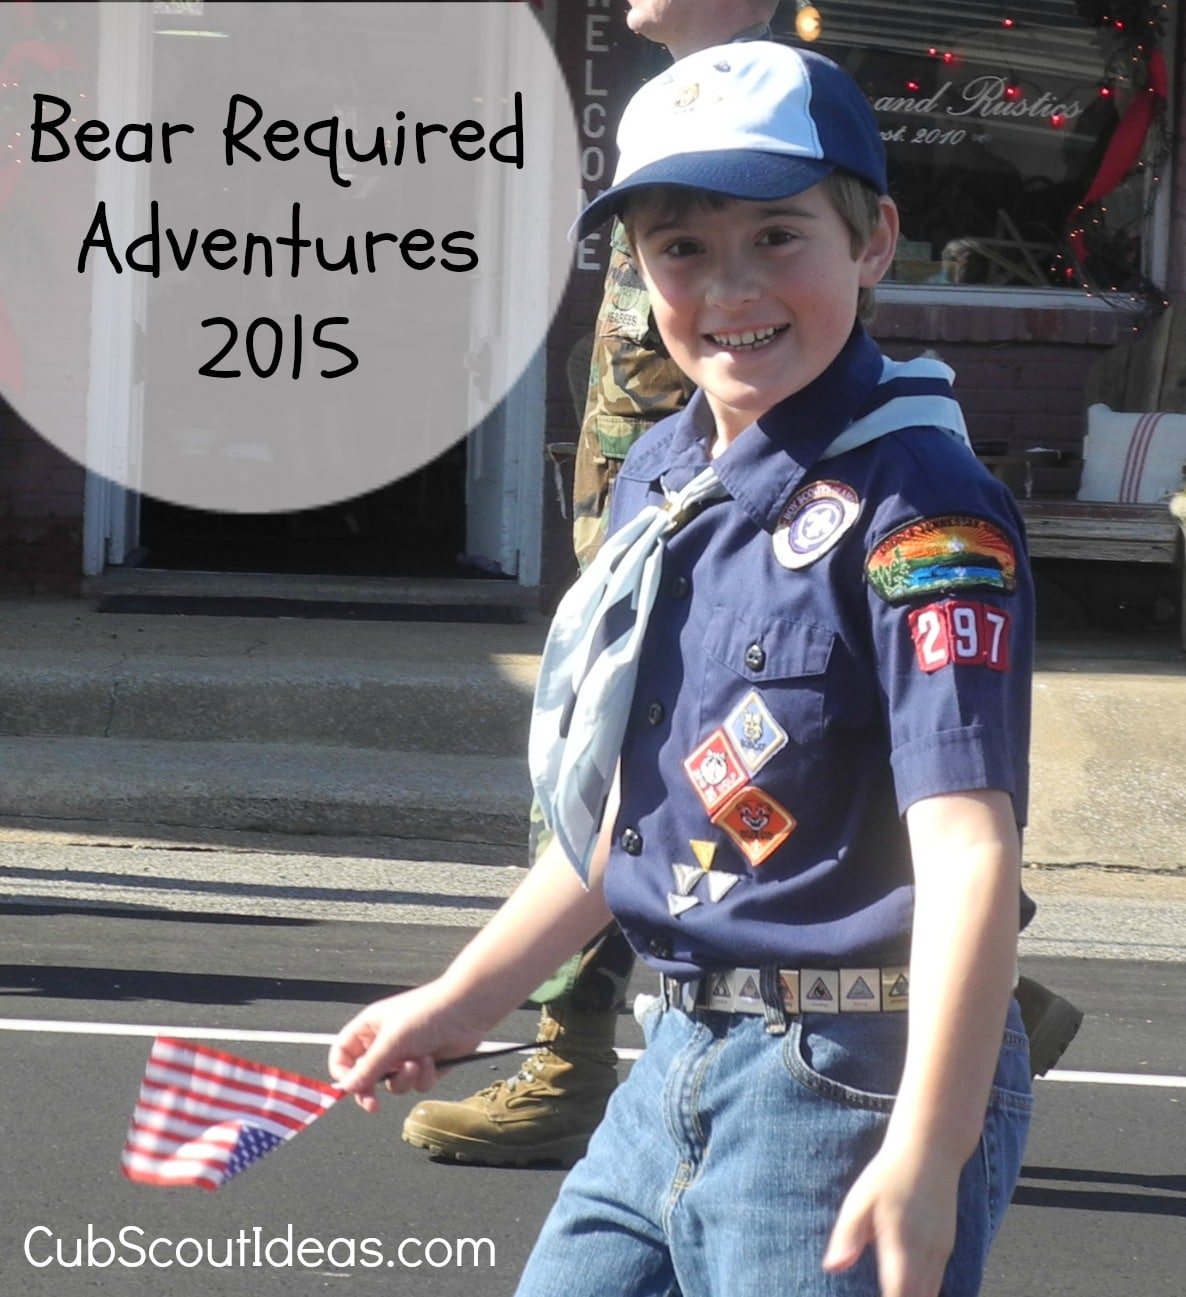 Bear Required Adventures